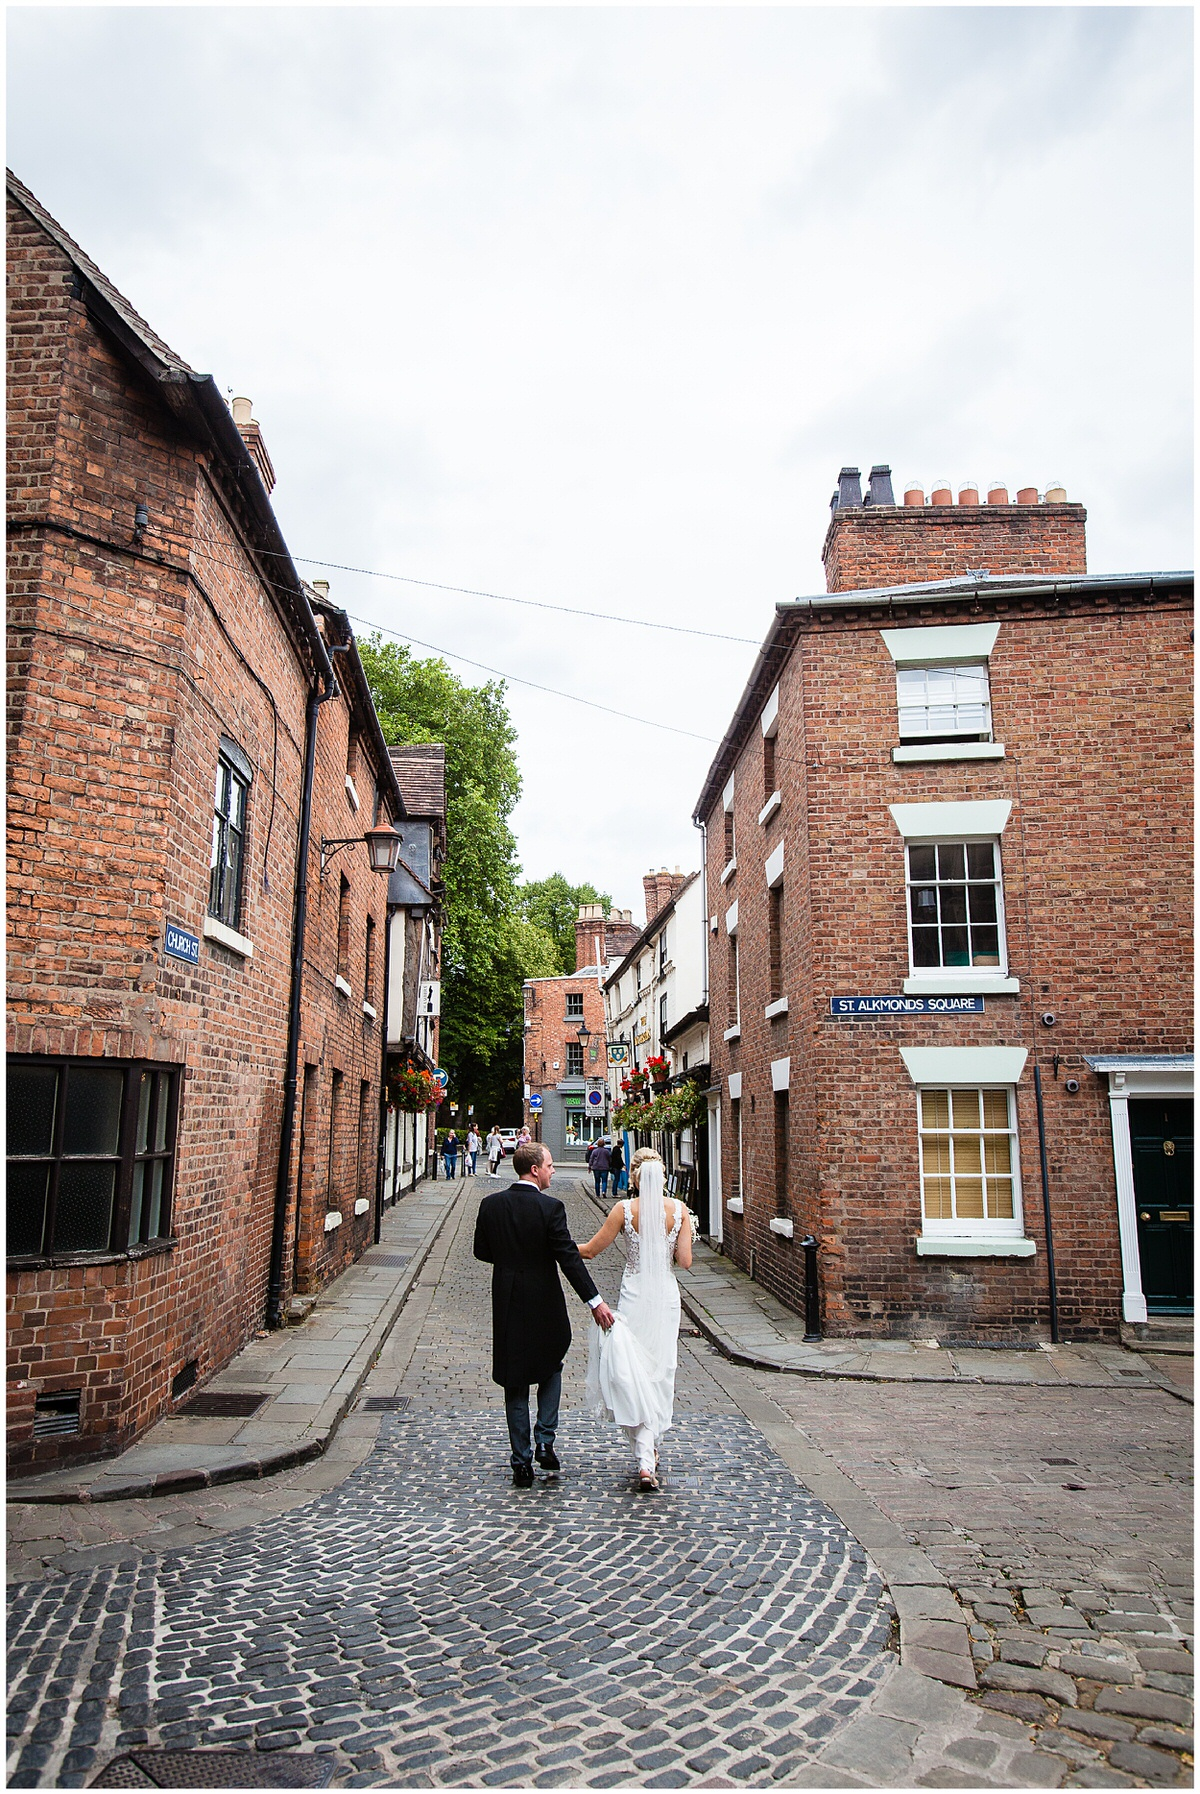 bride and groom walking away as newly weds from church - shropshire photographer